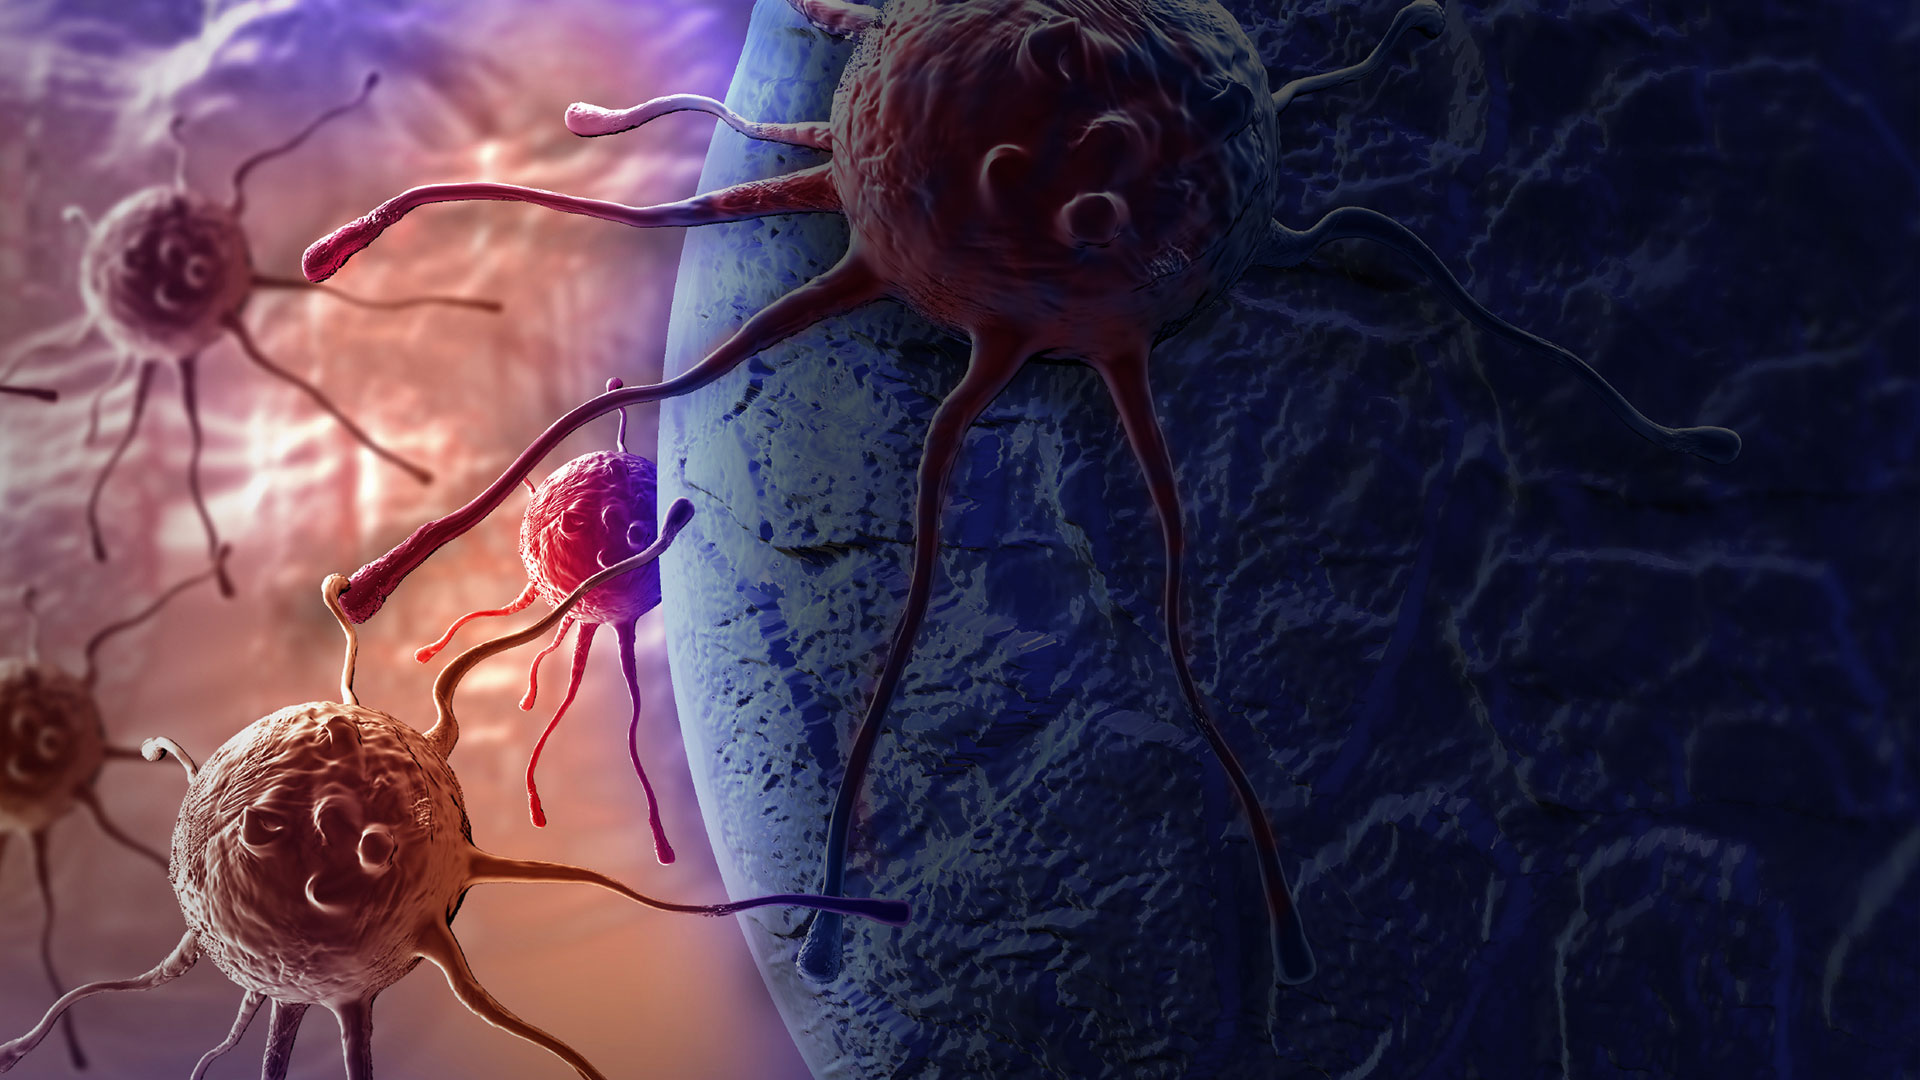 There are more than 200 types and subtypes of cancer